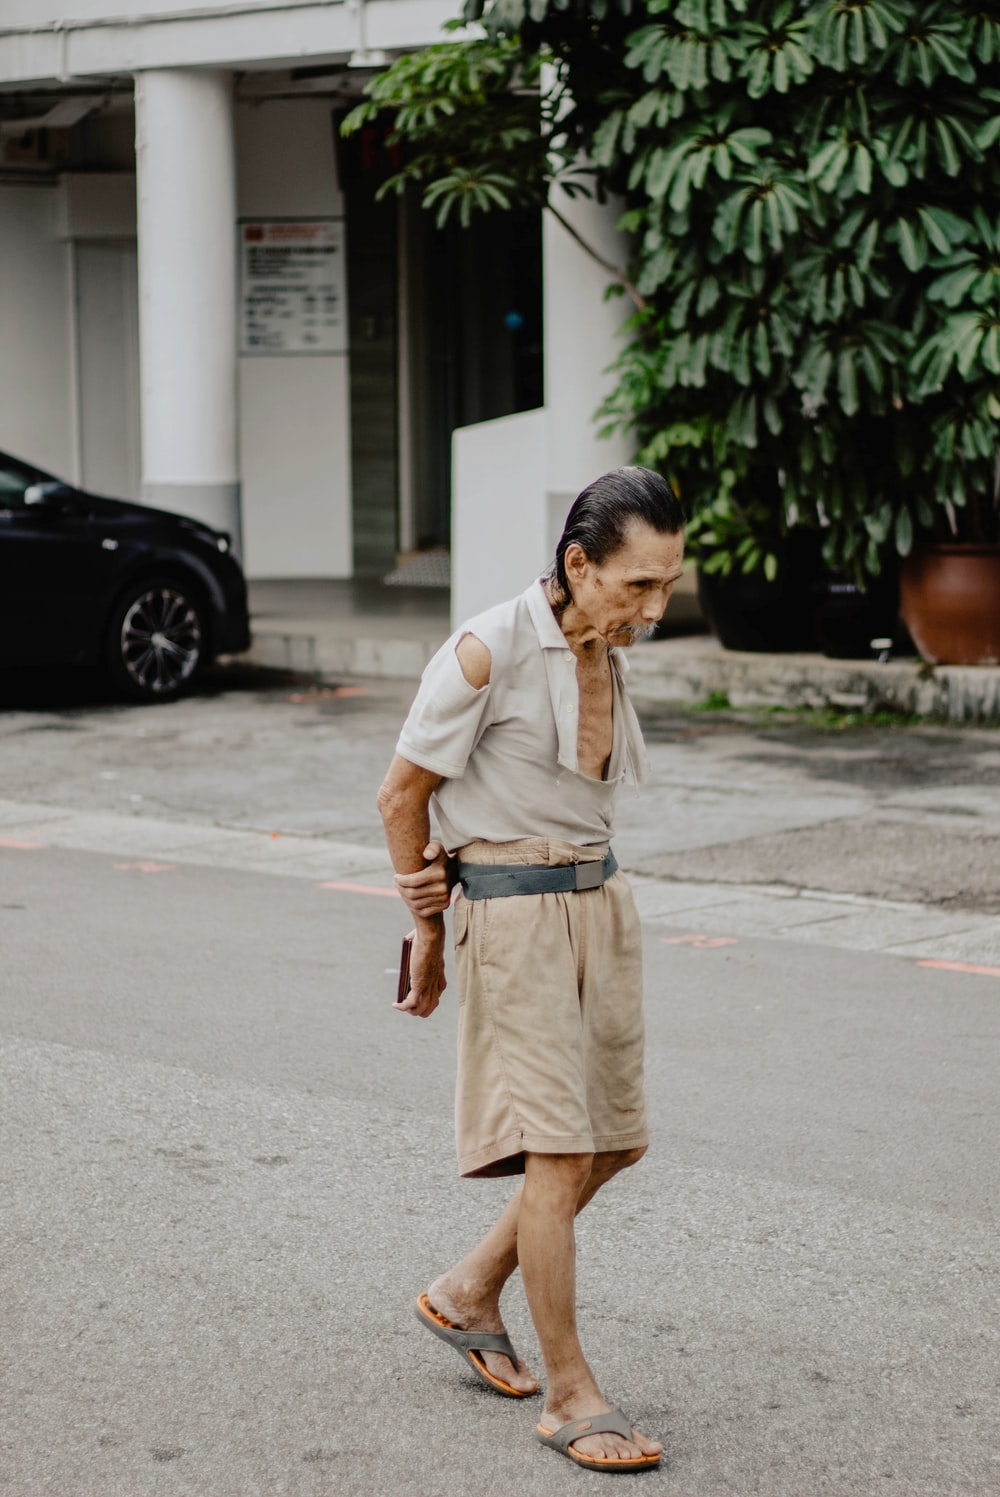 man wearing brown shorts standing on concrete road